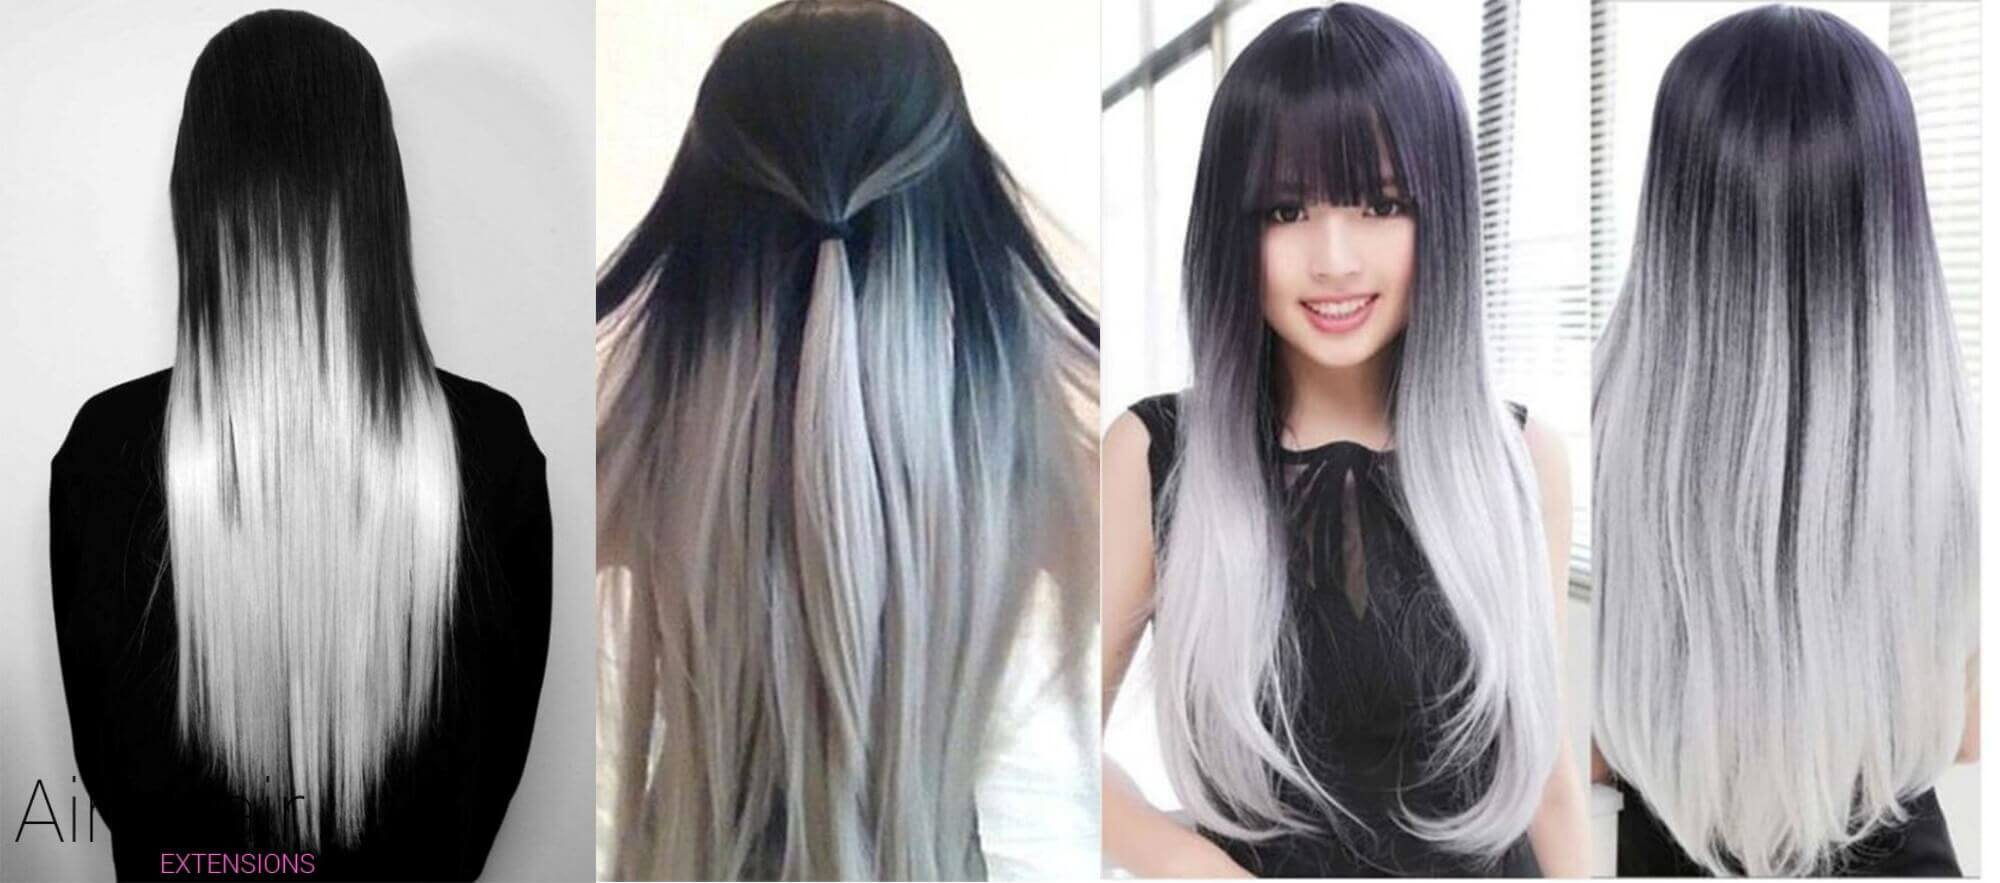 15 Great White Hairstyle Ideas for Hair Extension Users